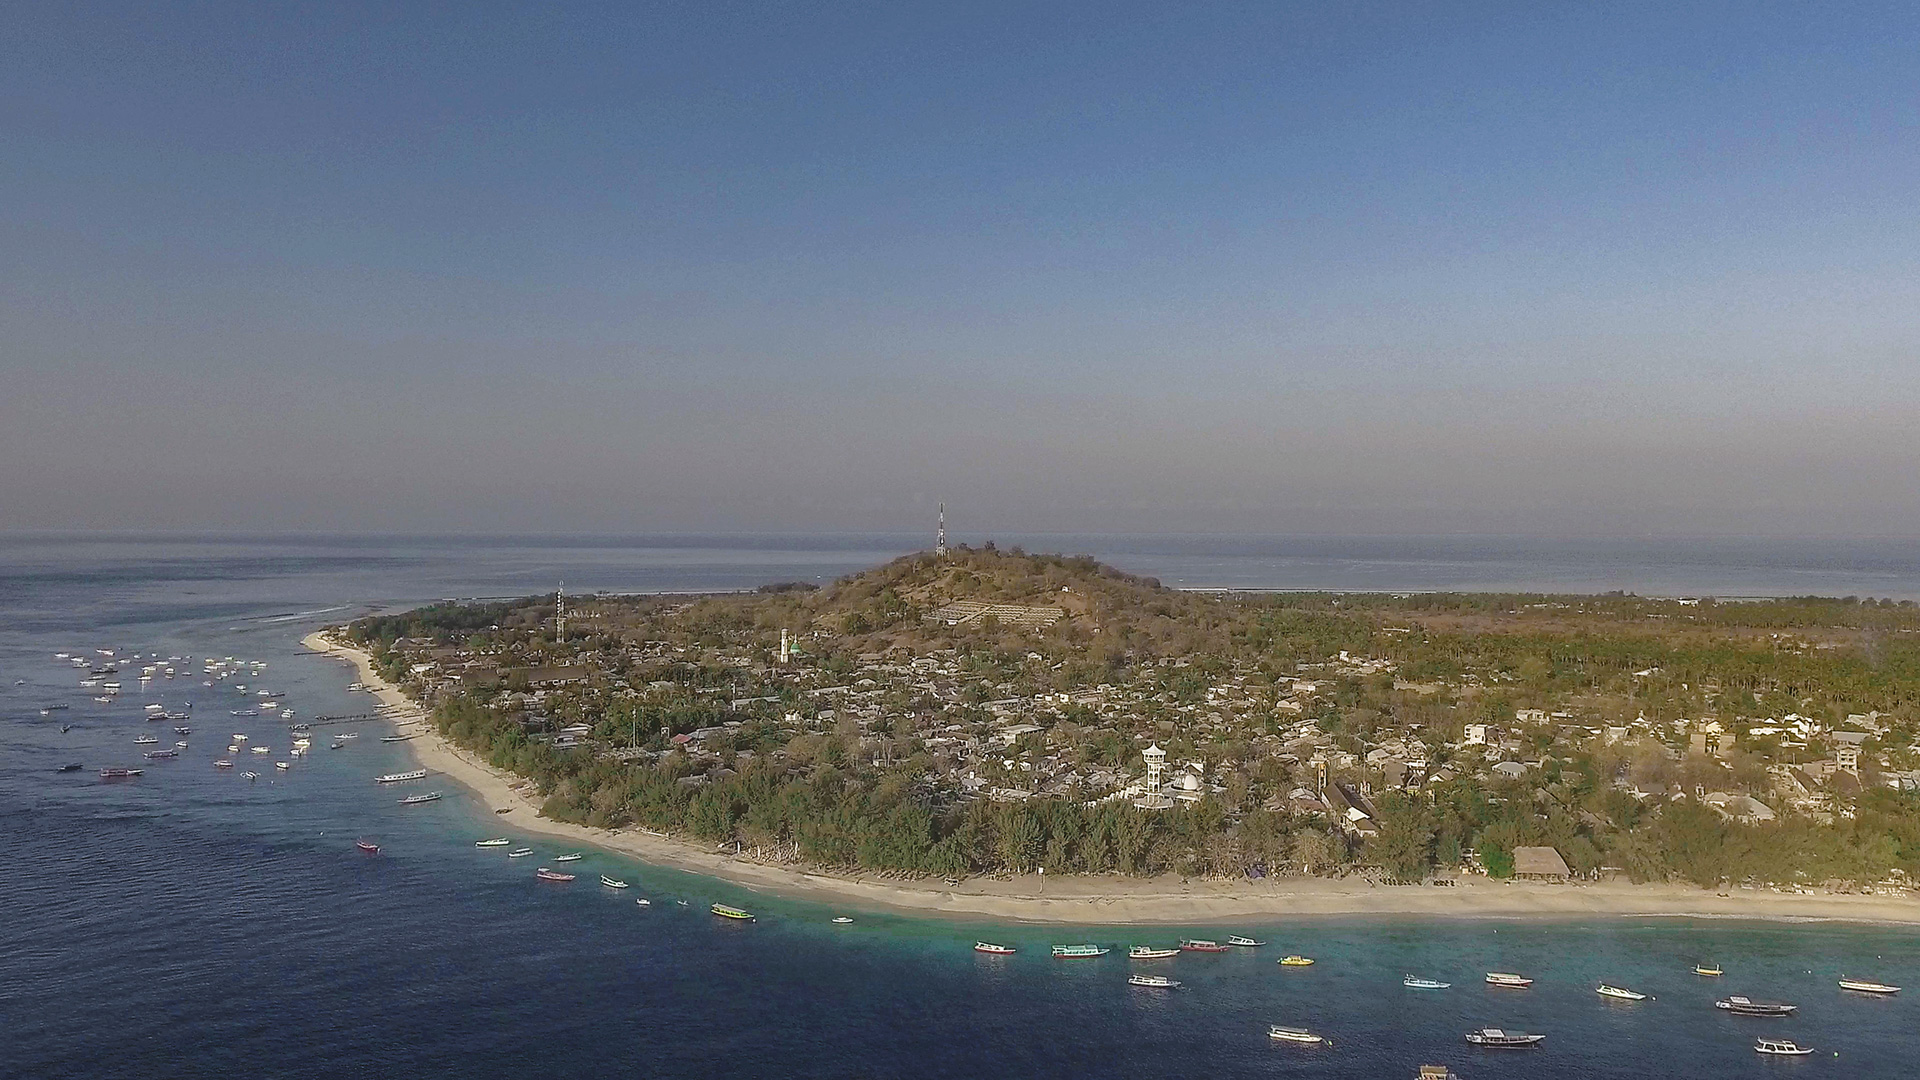 Evacuation hill. Is it safe to travel to the Gili Islands after the 2018 earthquakes?